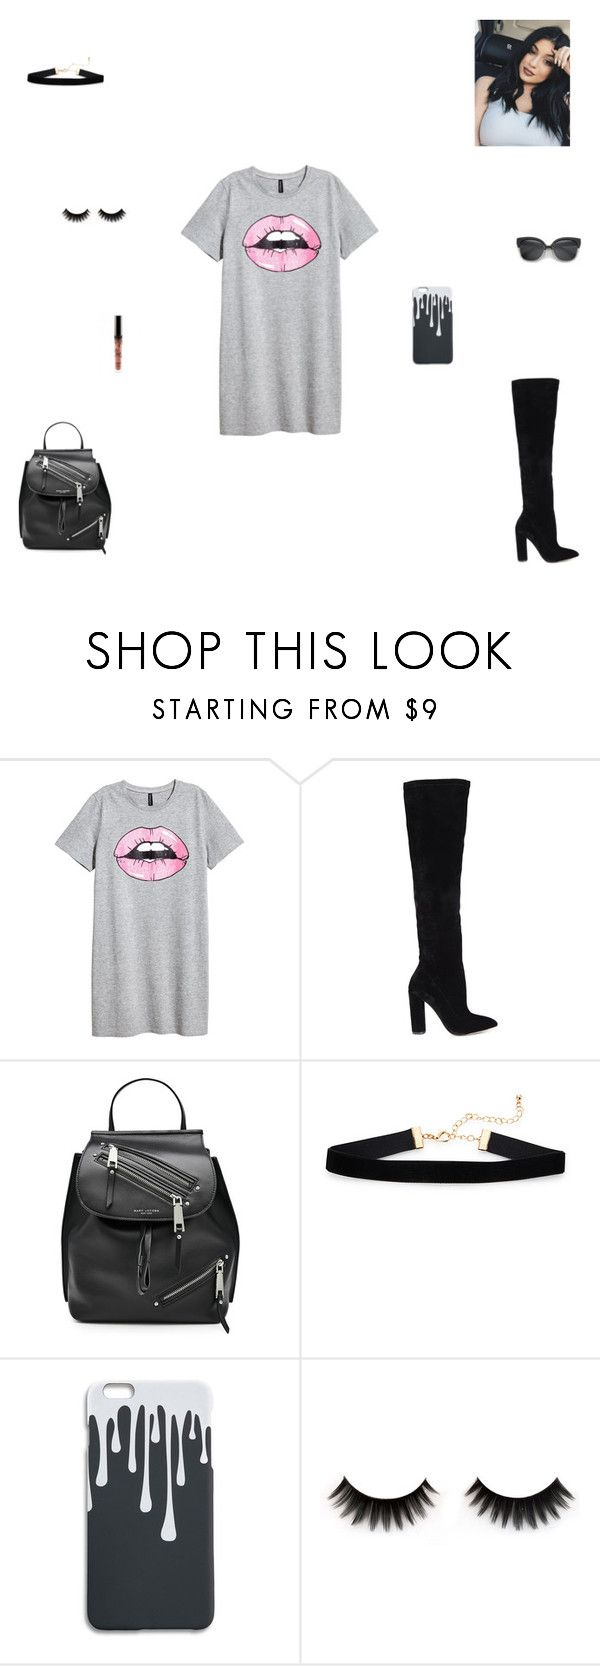 """kylie jenner lips"" by synclairel ❤ liked on Polyvore featuring H&M, ALDO, Marc Jacobs, Spring, cute, casual and ootd"